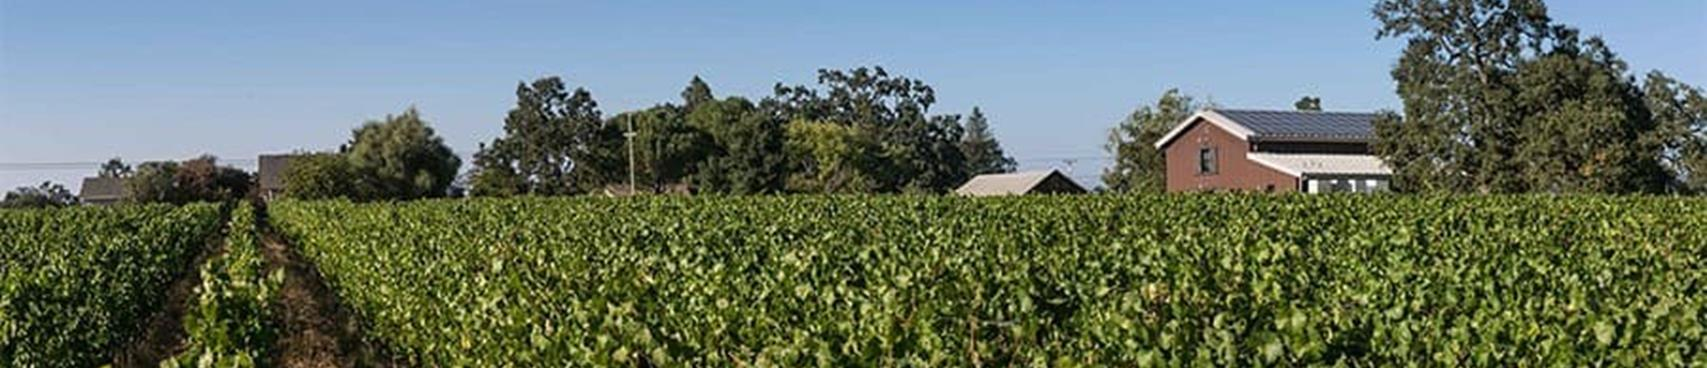 A image of Inman Family Wines